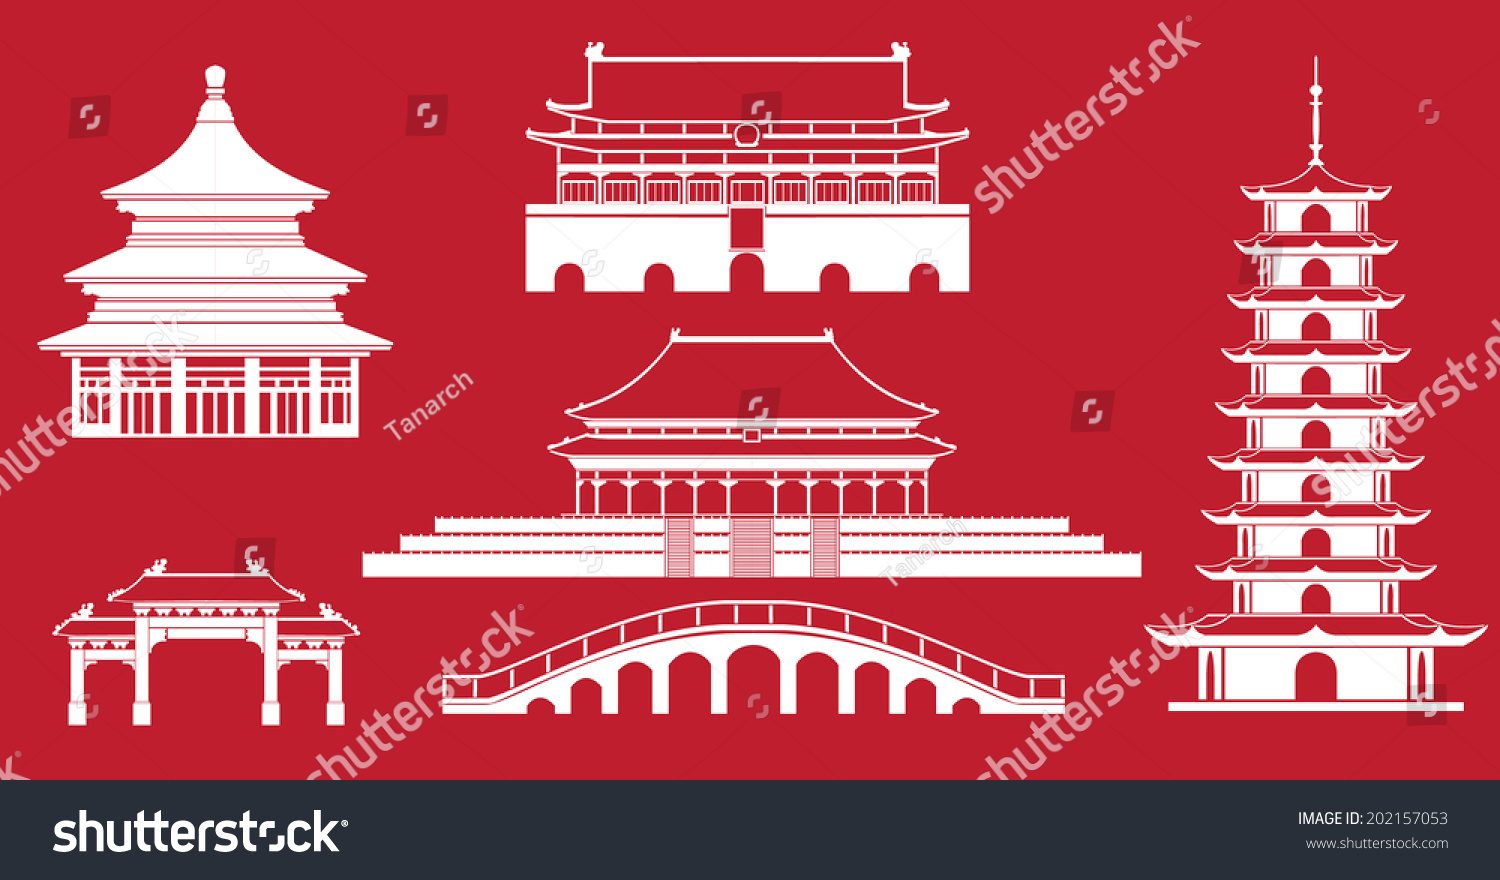 Simplicity Chinese Architecture Graphic Drawings